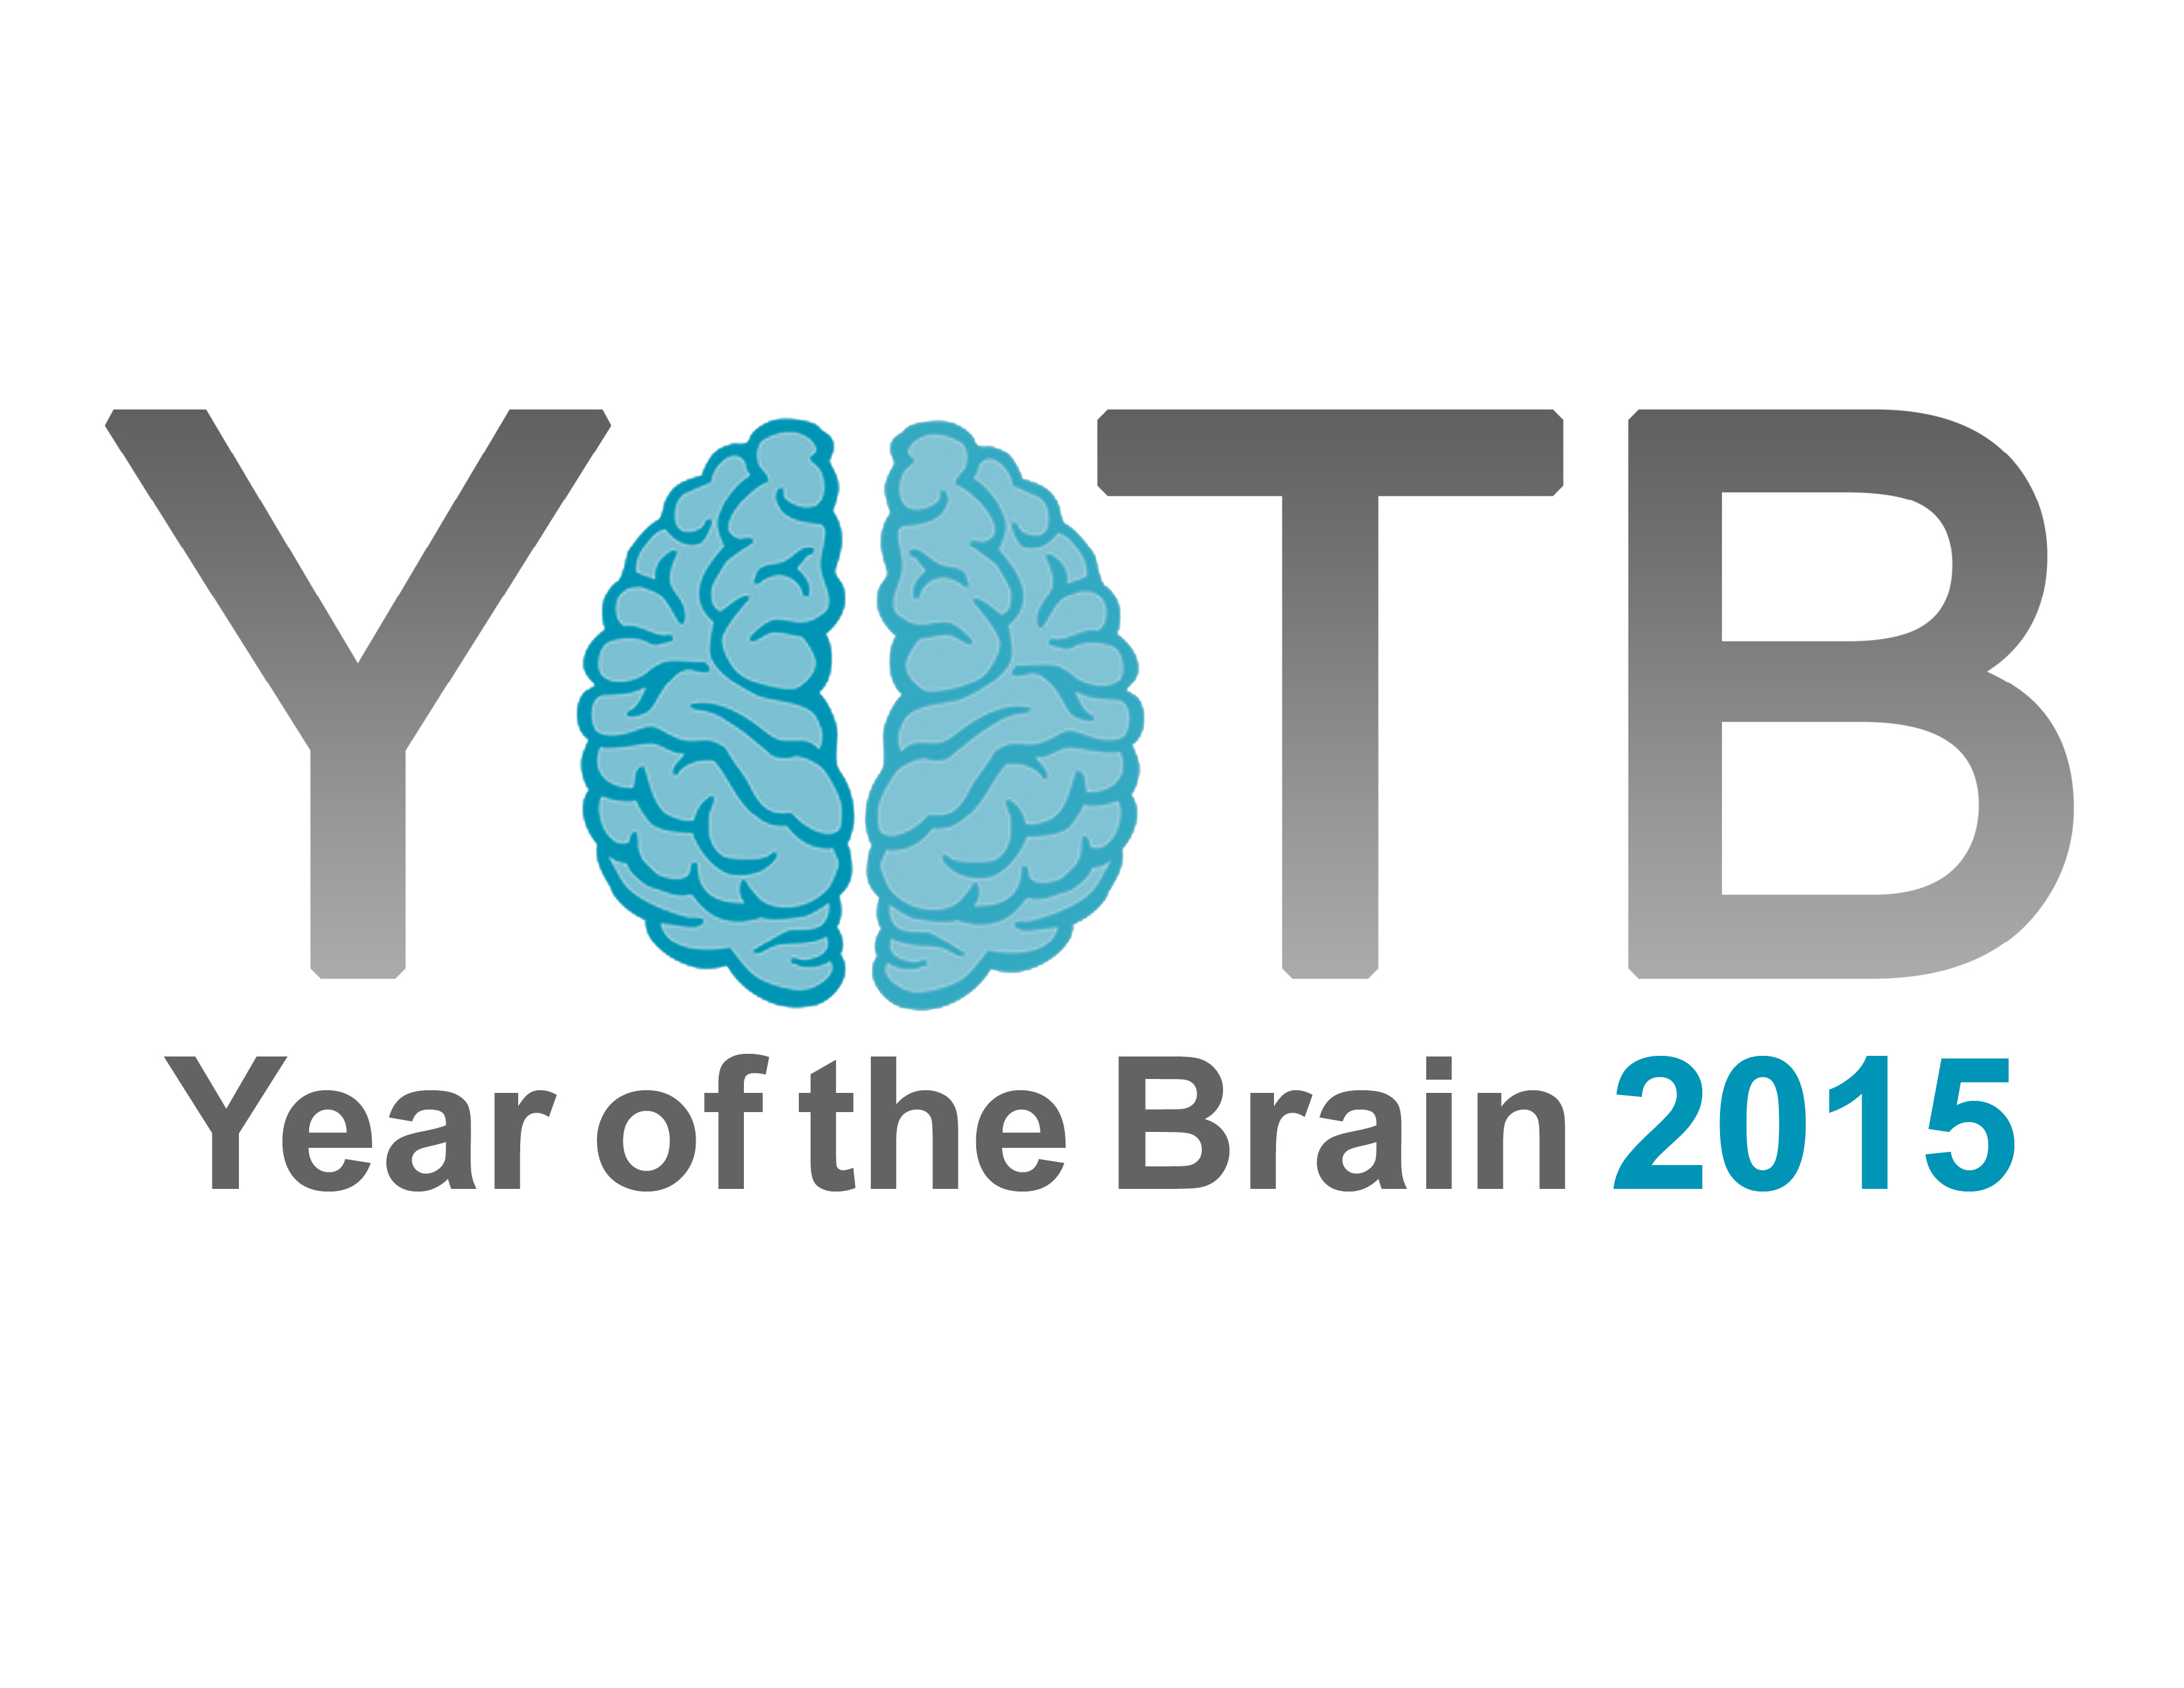 Year of the Brain